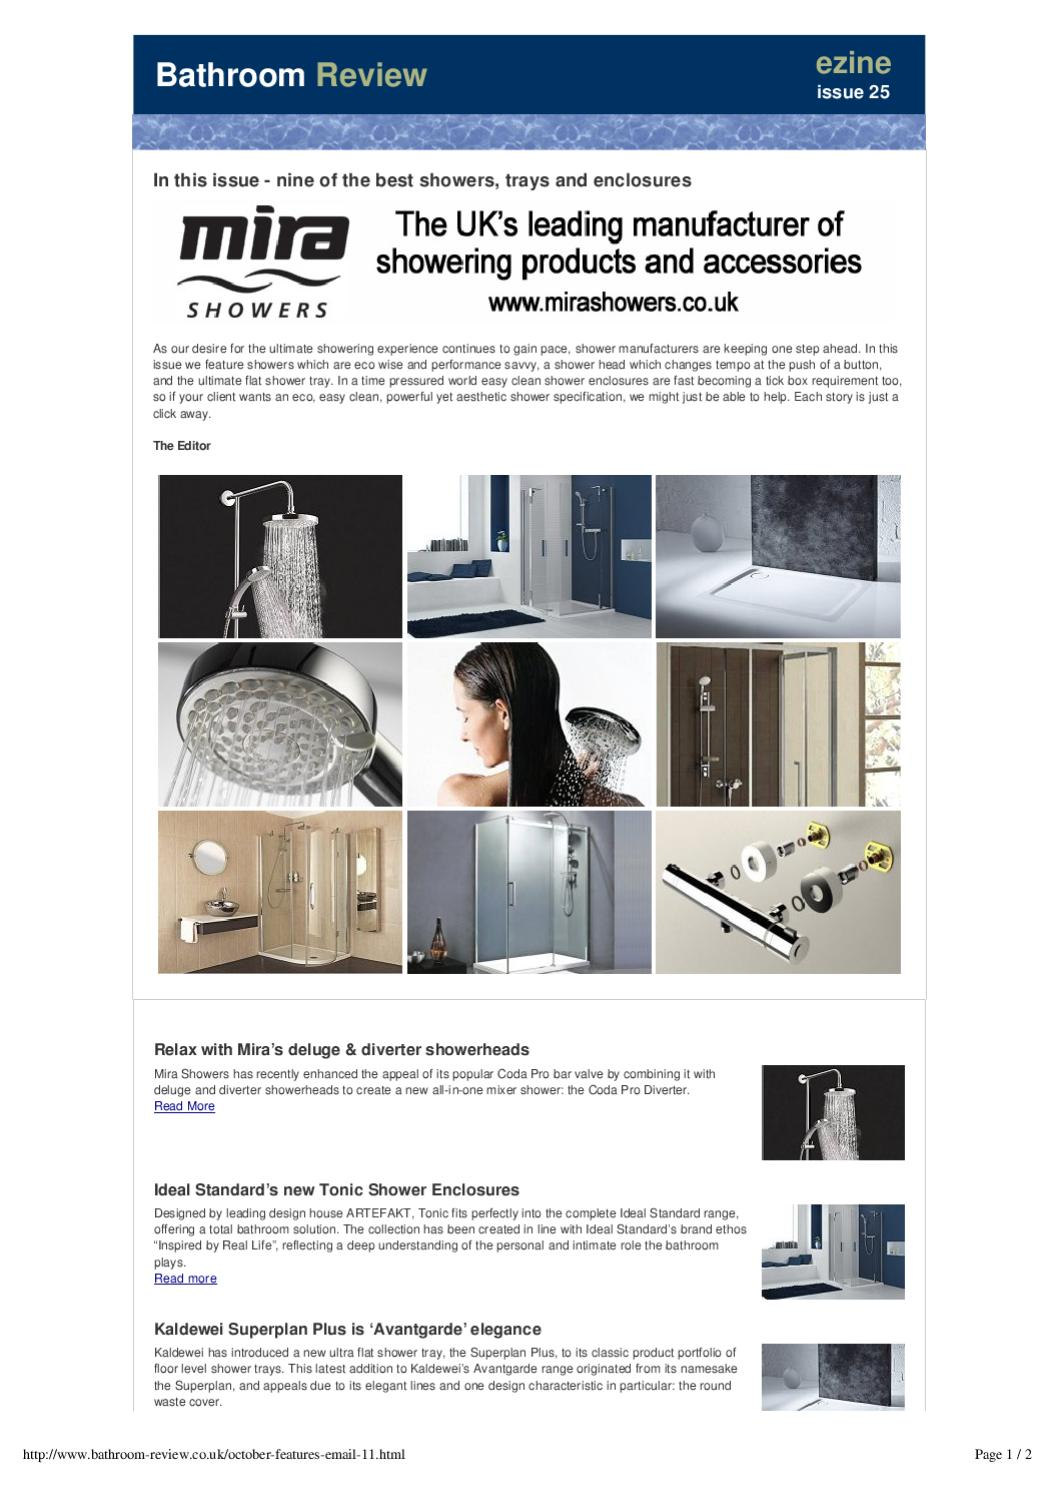 Kaldewei Superplan Plus Nine Of The Best Showers Trays And Enclosures By Andy Owen Issuu